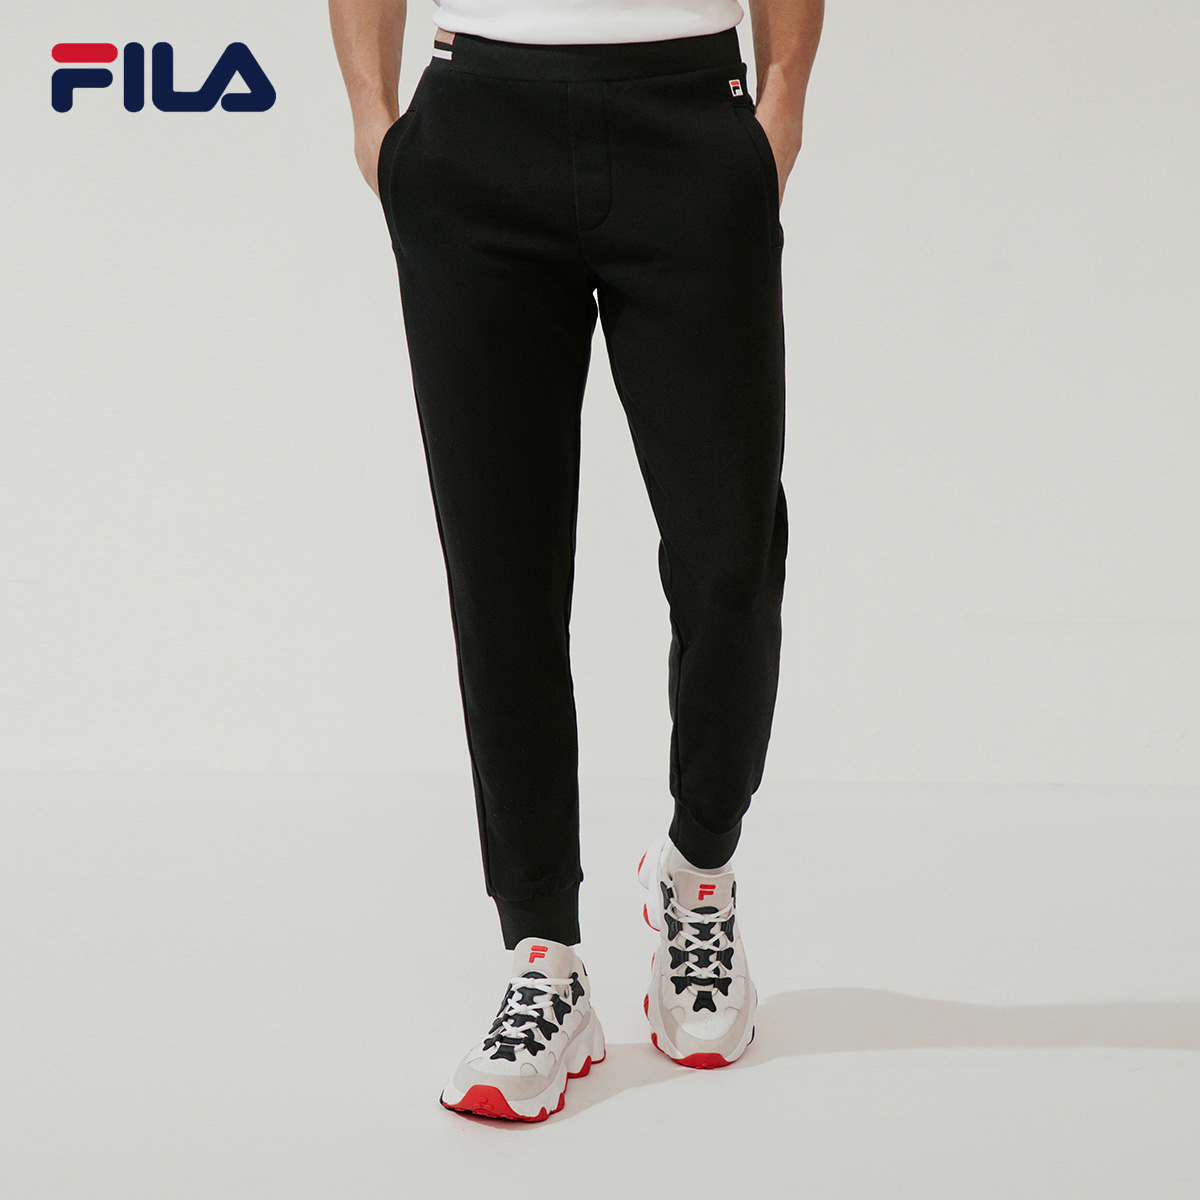 FILA FILA official trousers men's knitting 2020 spring new straight casual pants closing sports pants men